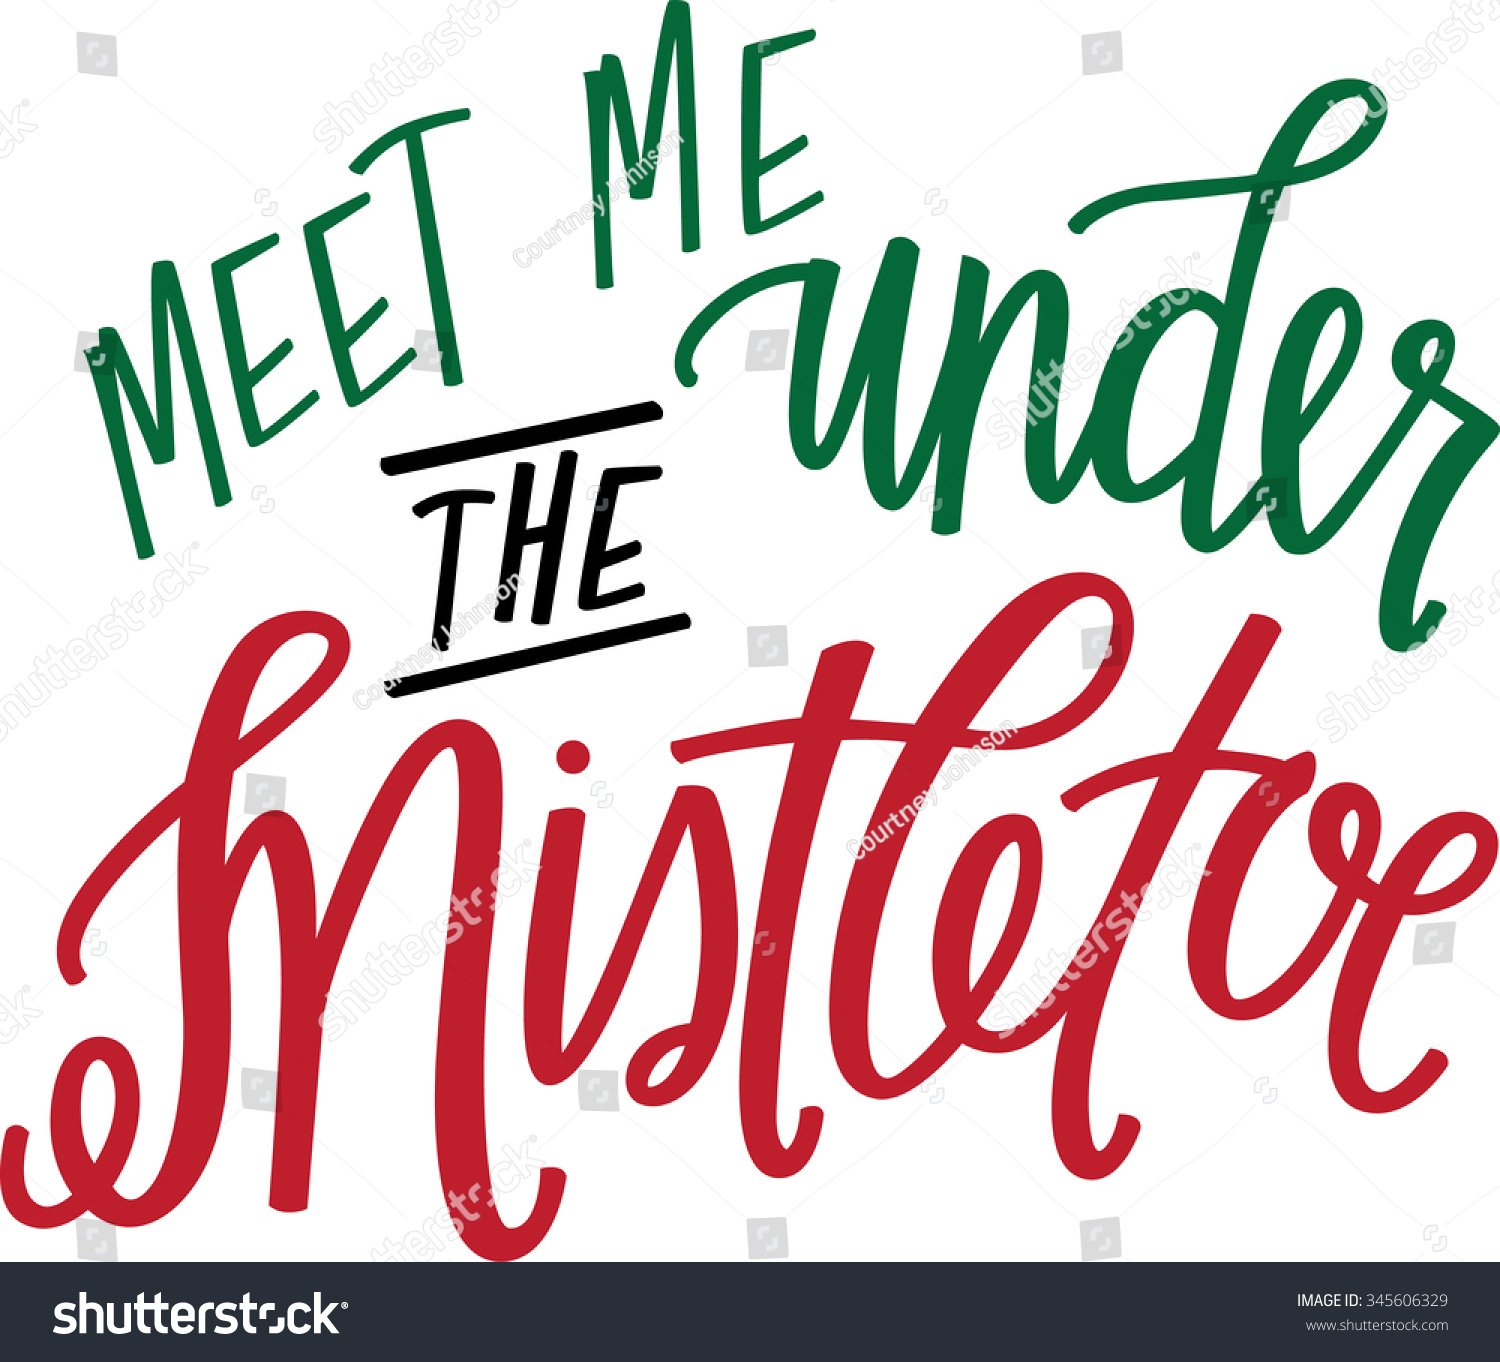 meet me under the mistletoe home